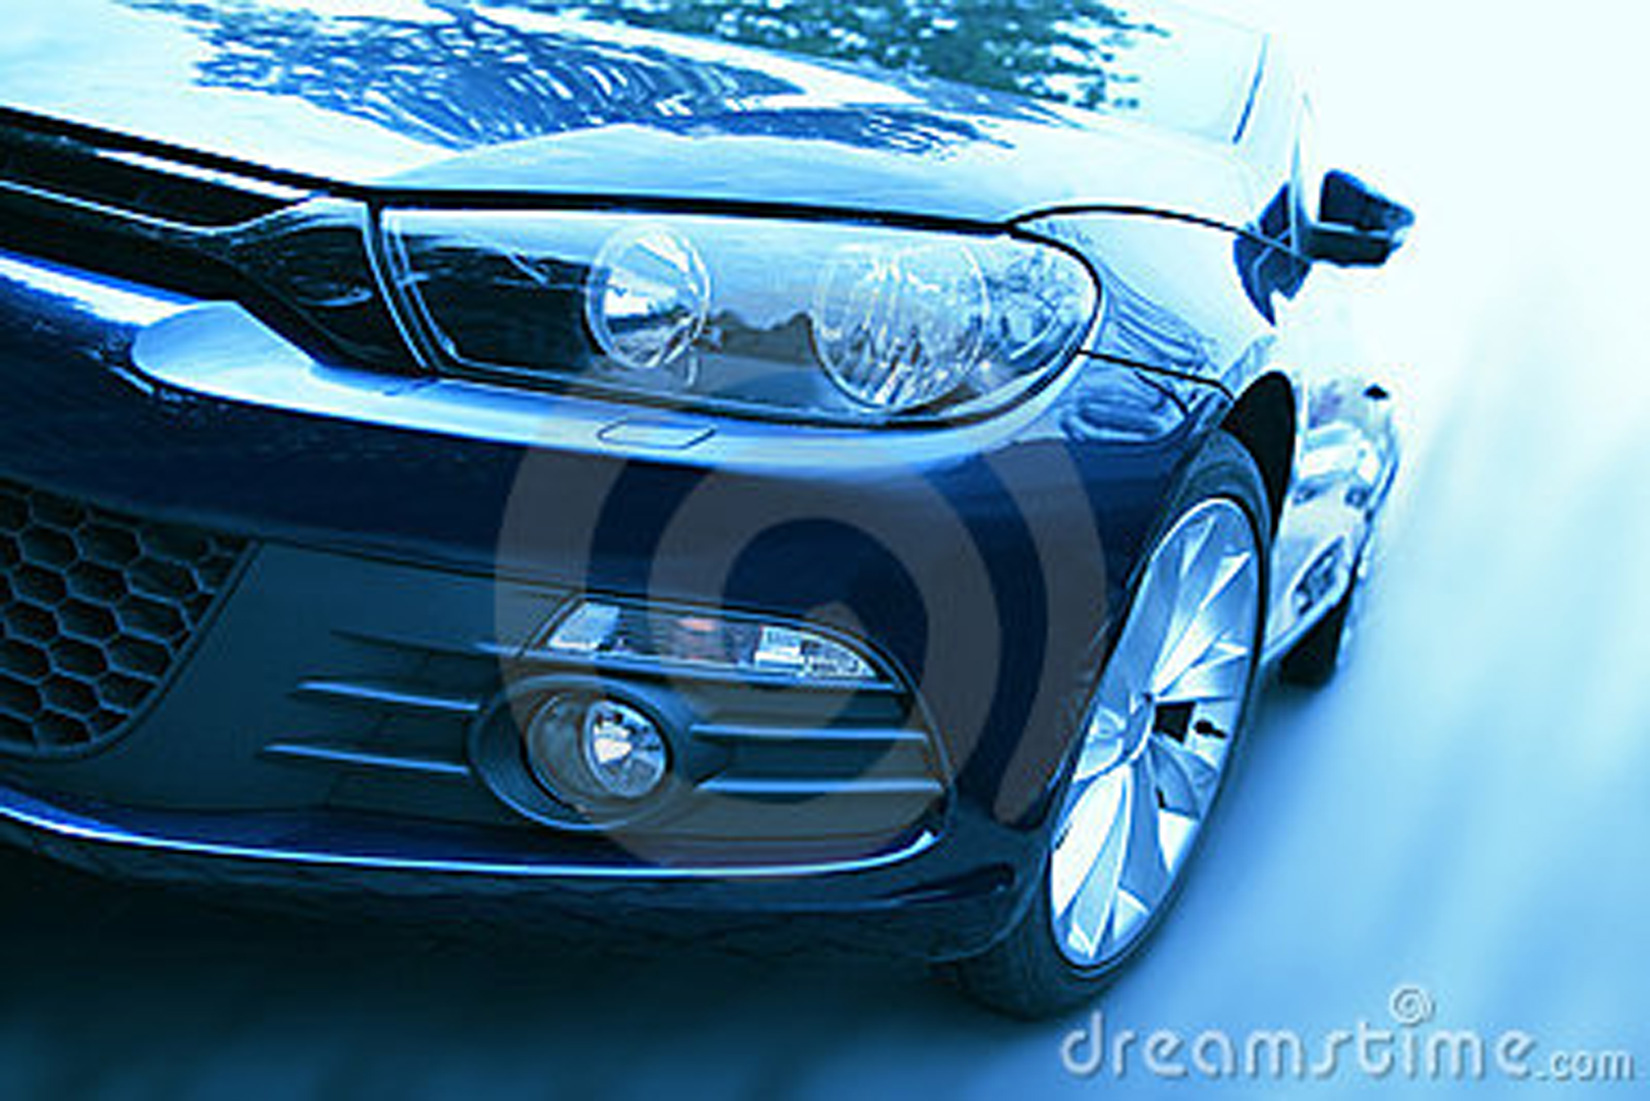 blue-sports-car-16008408-bg-test.jpg